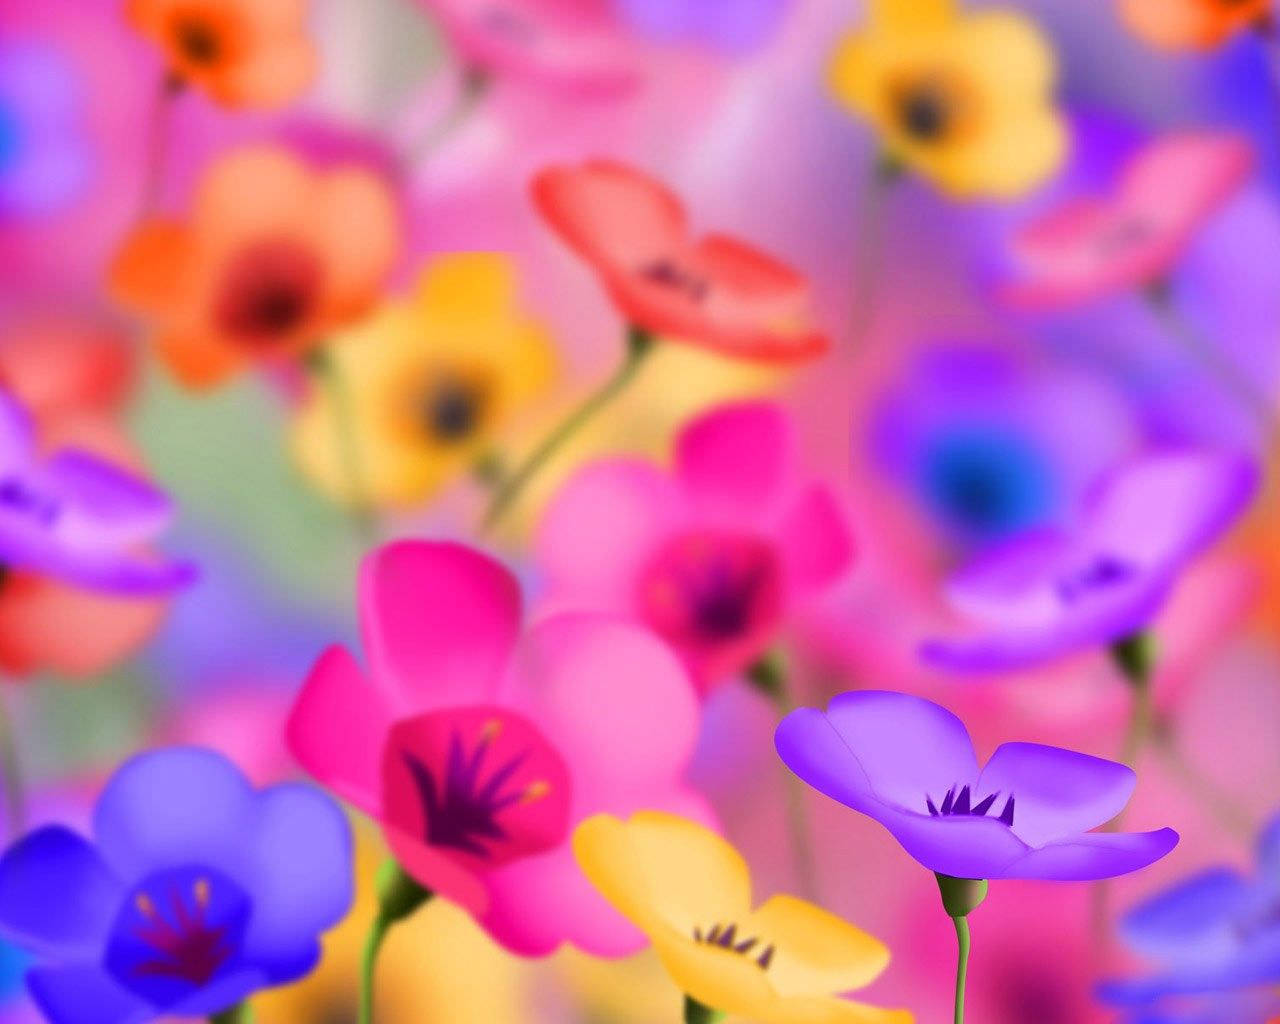 Cool Backgrounds of Flowers